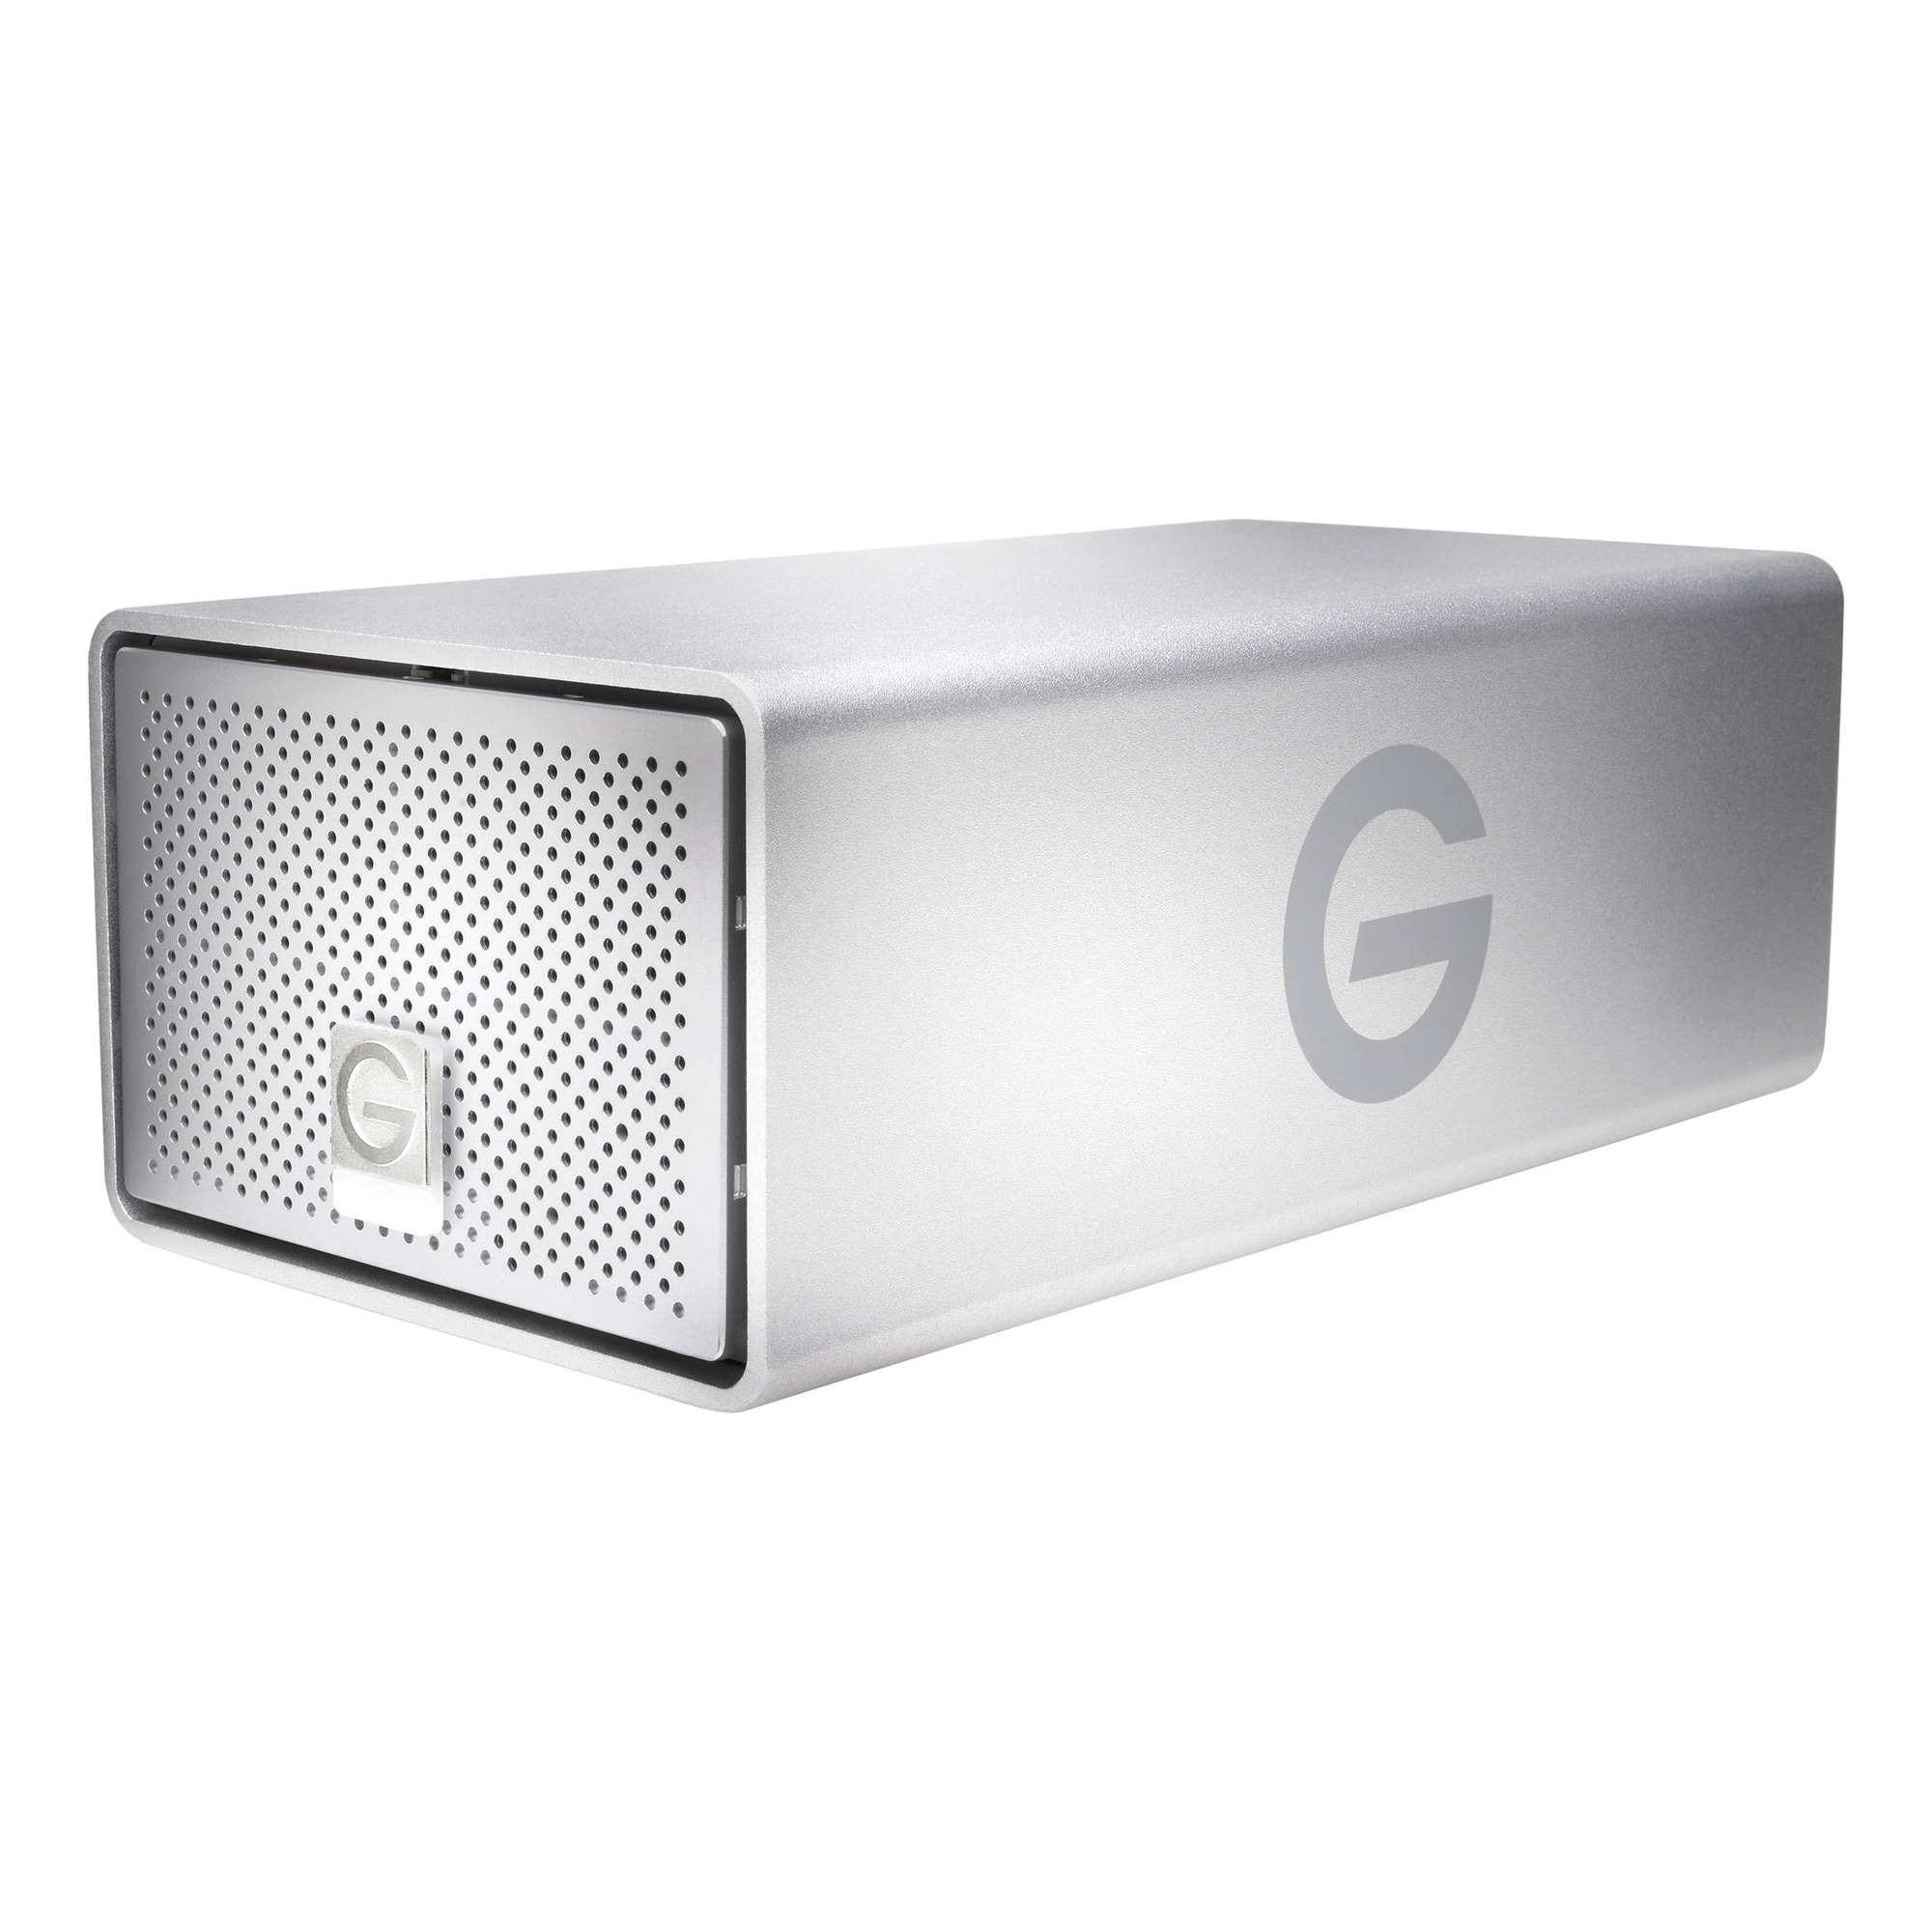 8TB G-RAID Storage System with Removable Drives